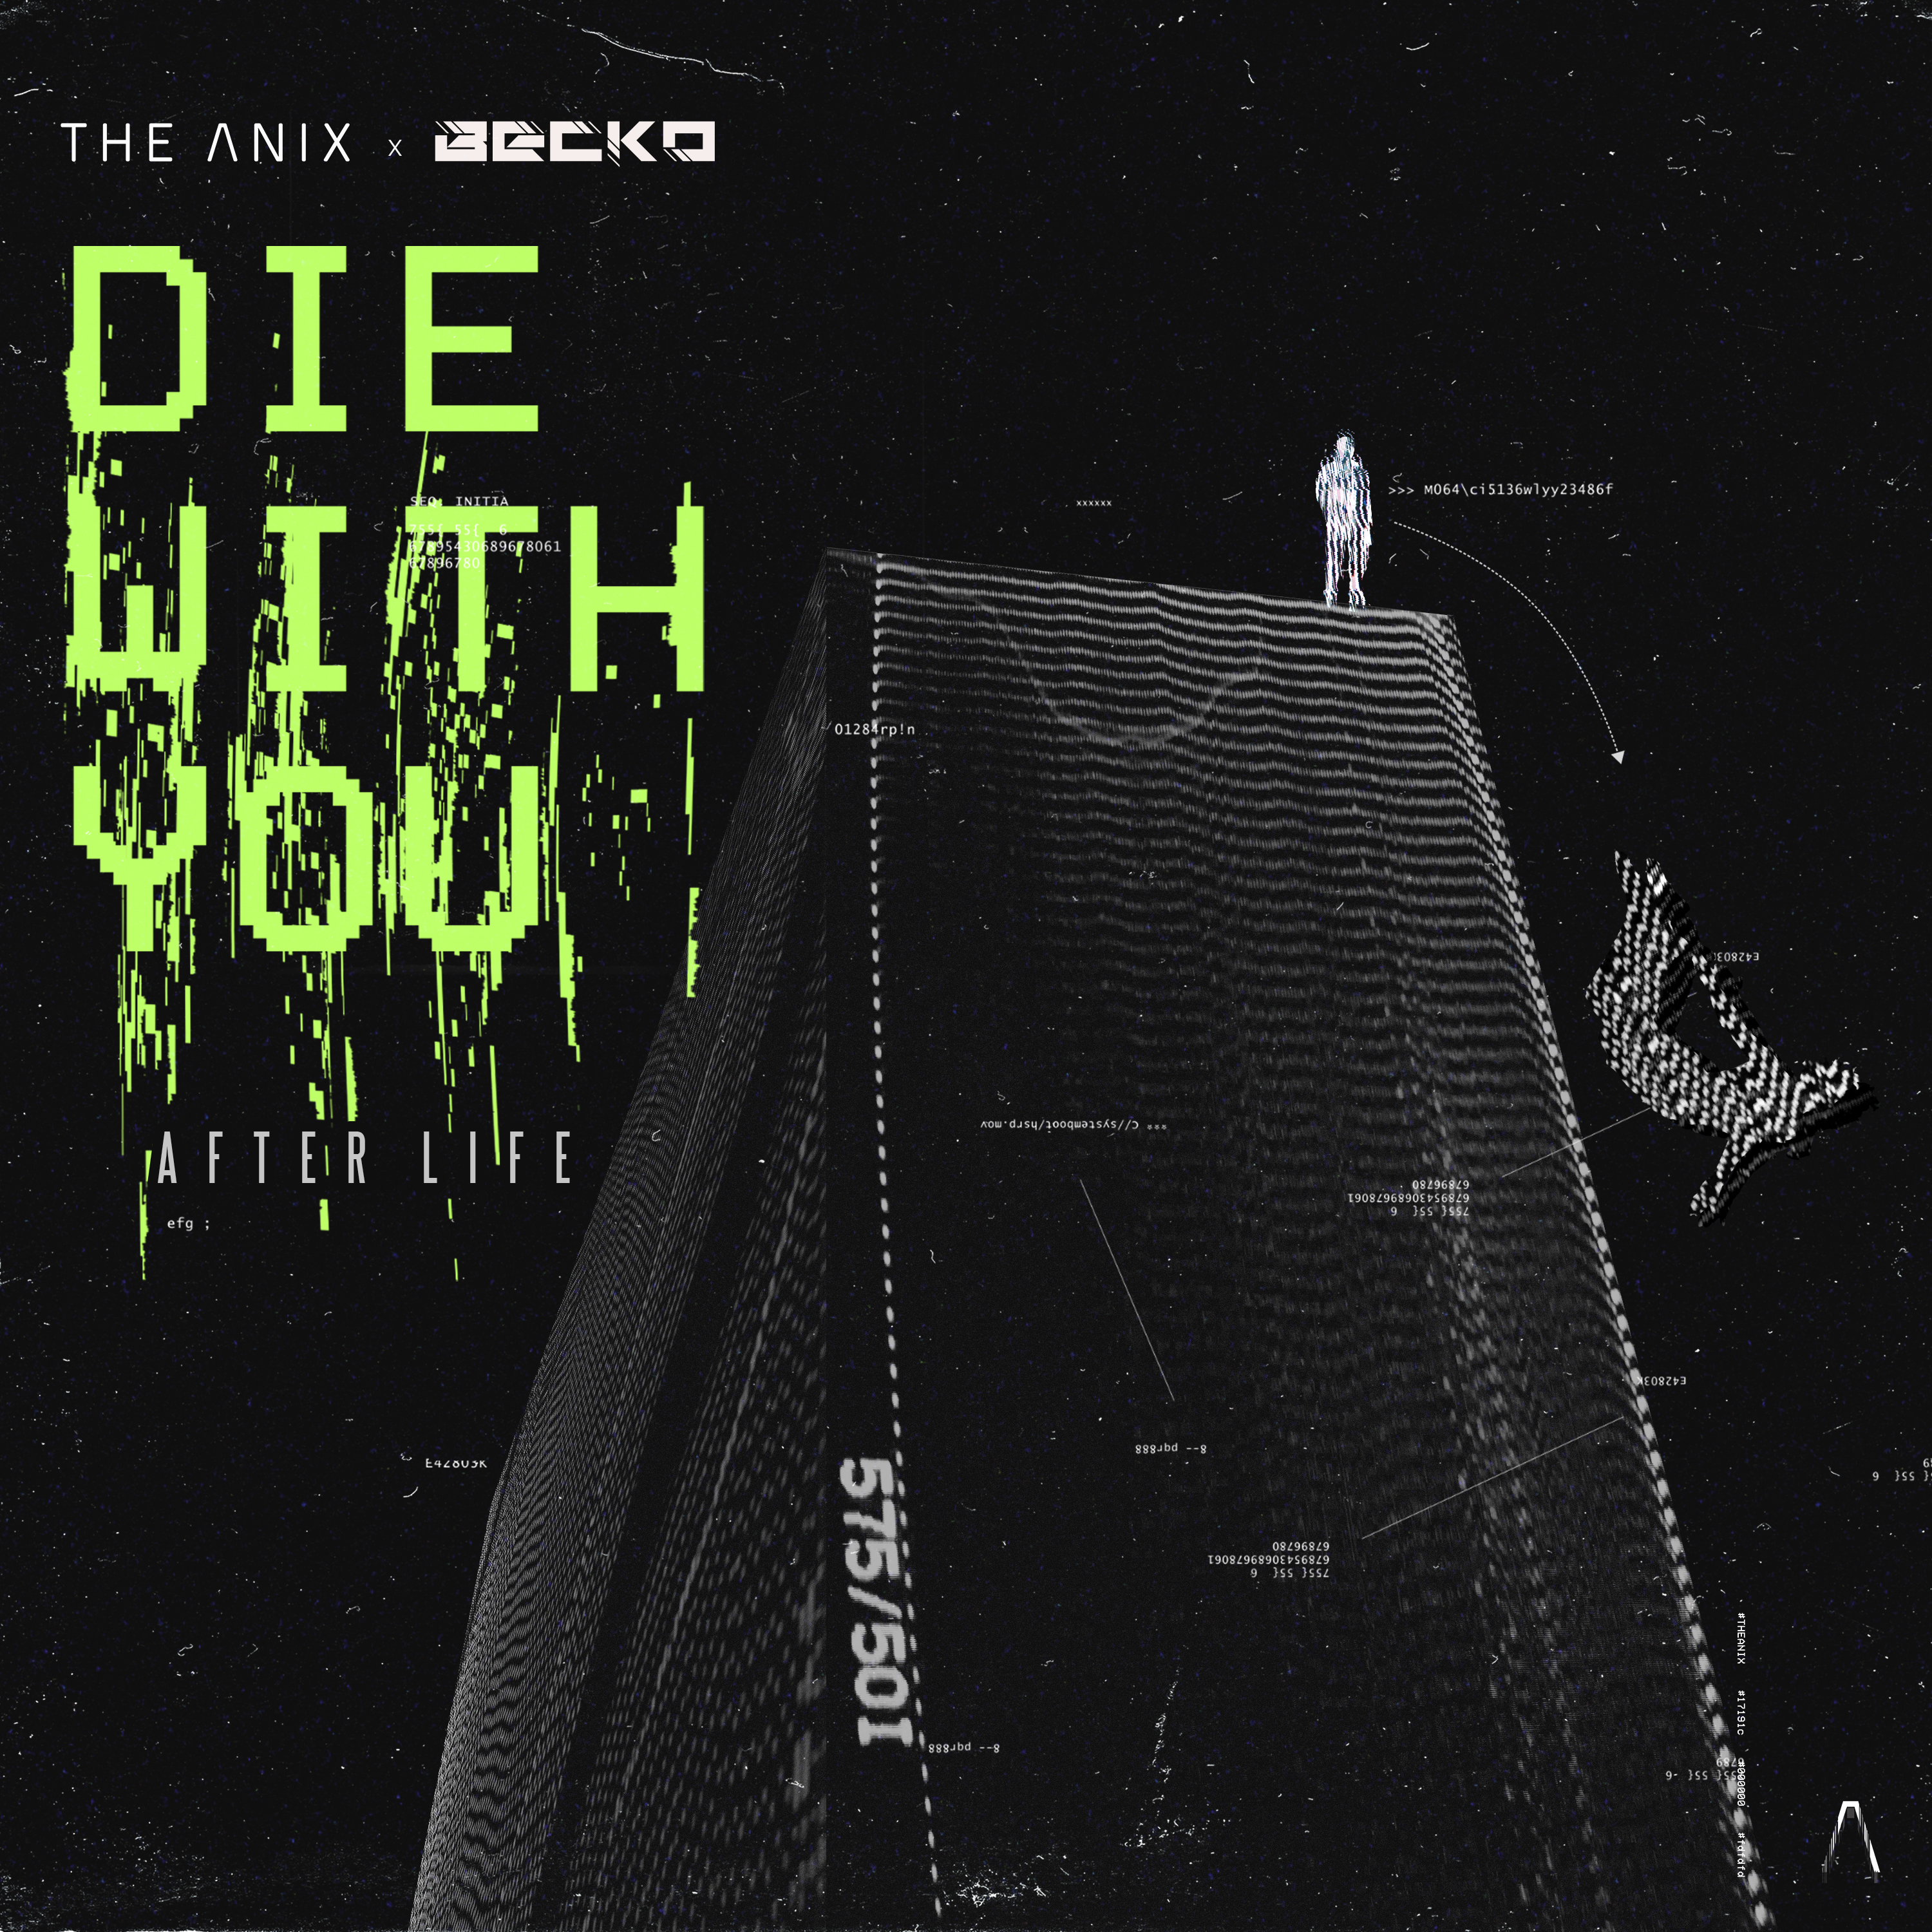 The Anix x Becko - Die With You (After Life) [Single] Image